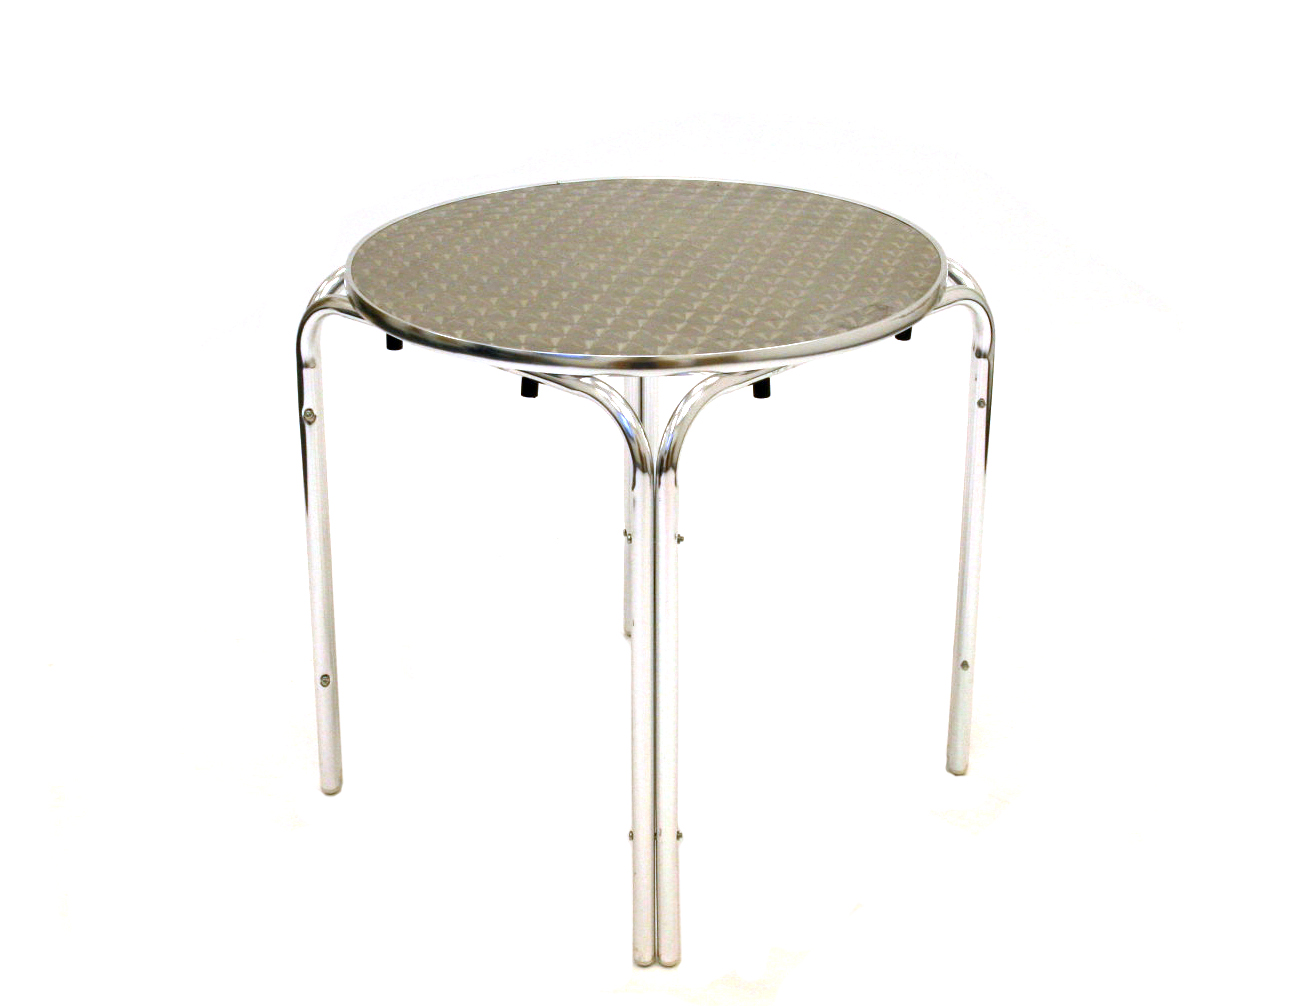 Aluminium Round Tables - 70cm Diameter Stacking - BE Furniture Sales